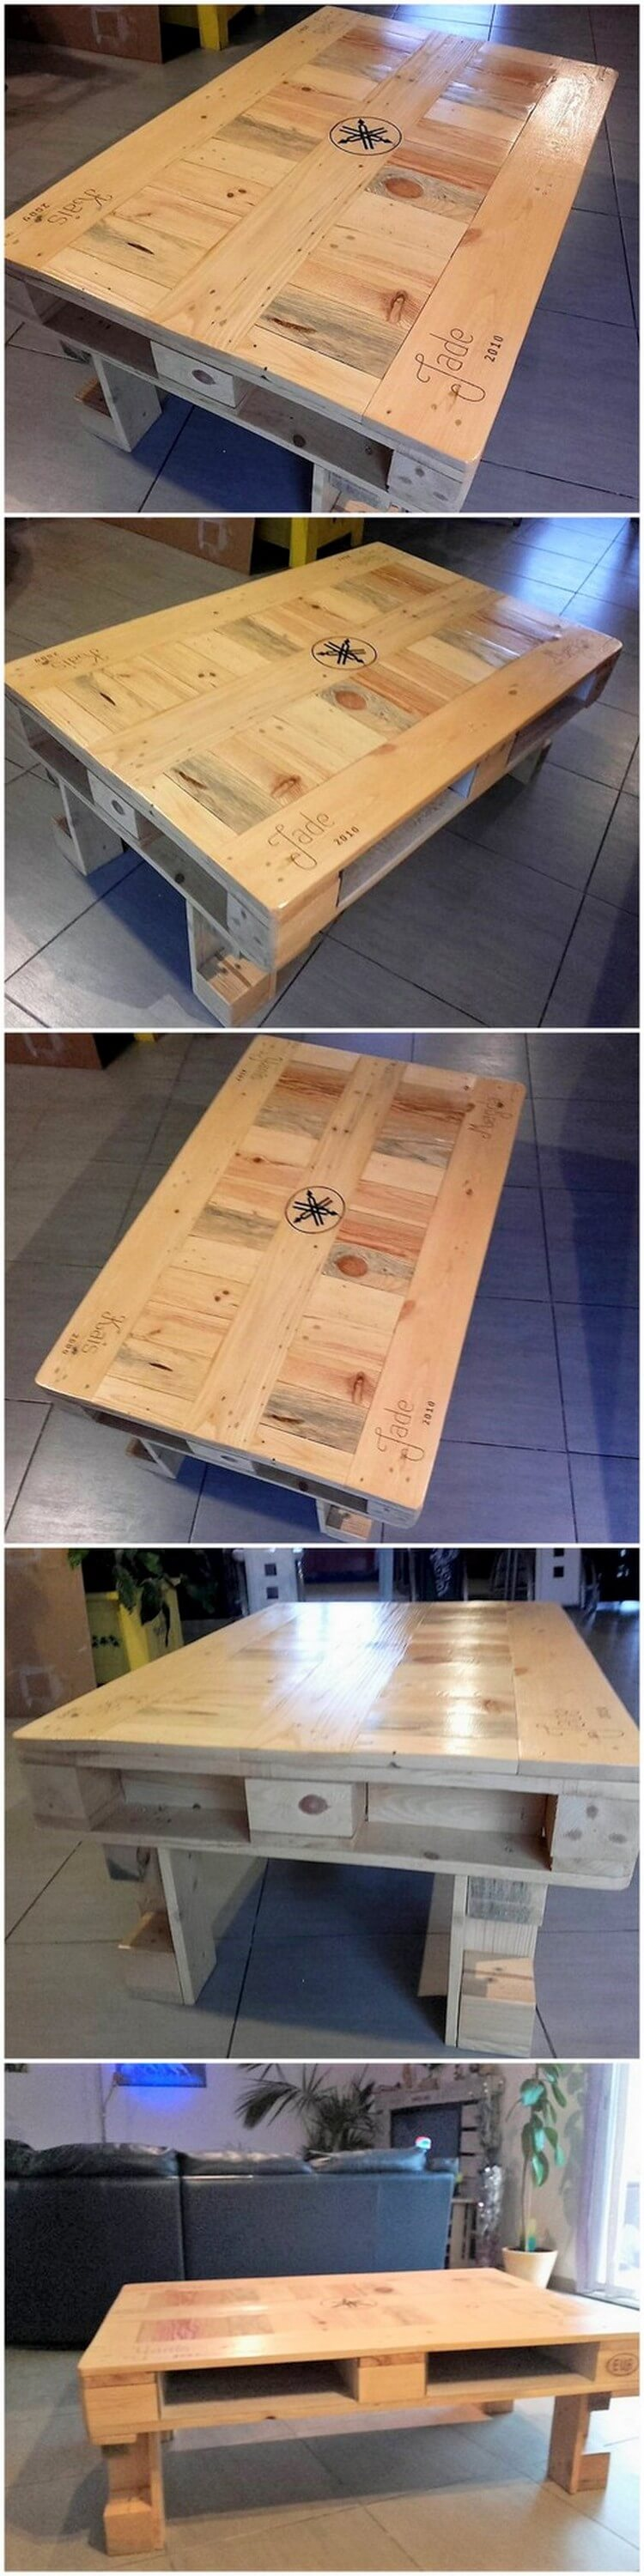 Coffee table made out of wood pallets pallet wood projects for Projects made out of wood